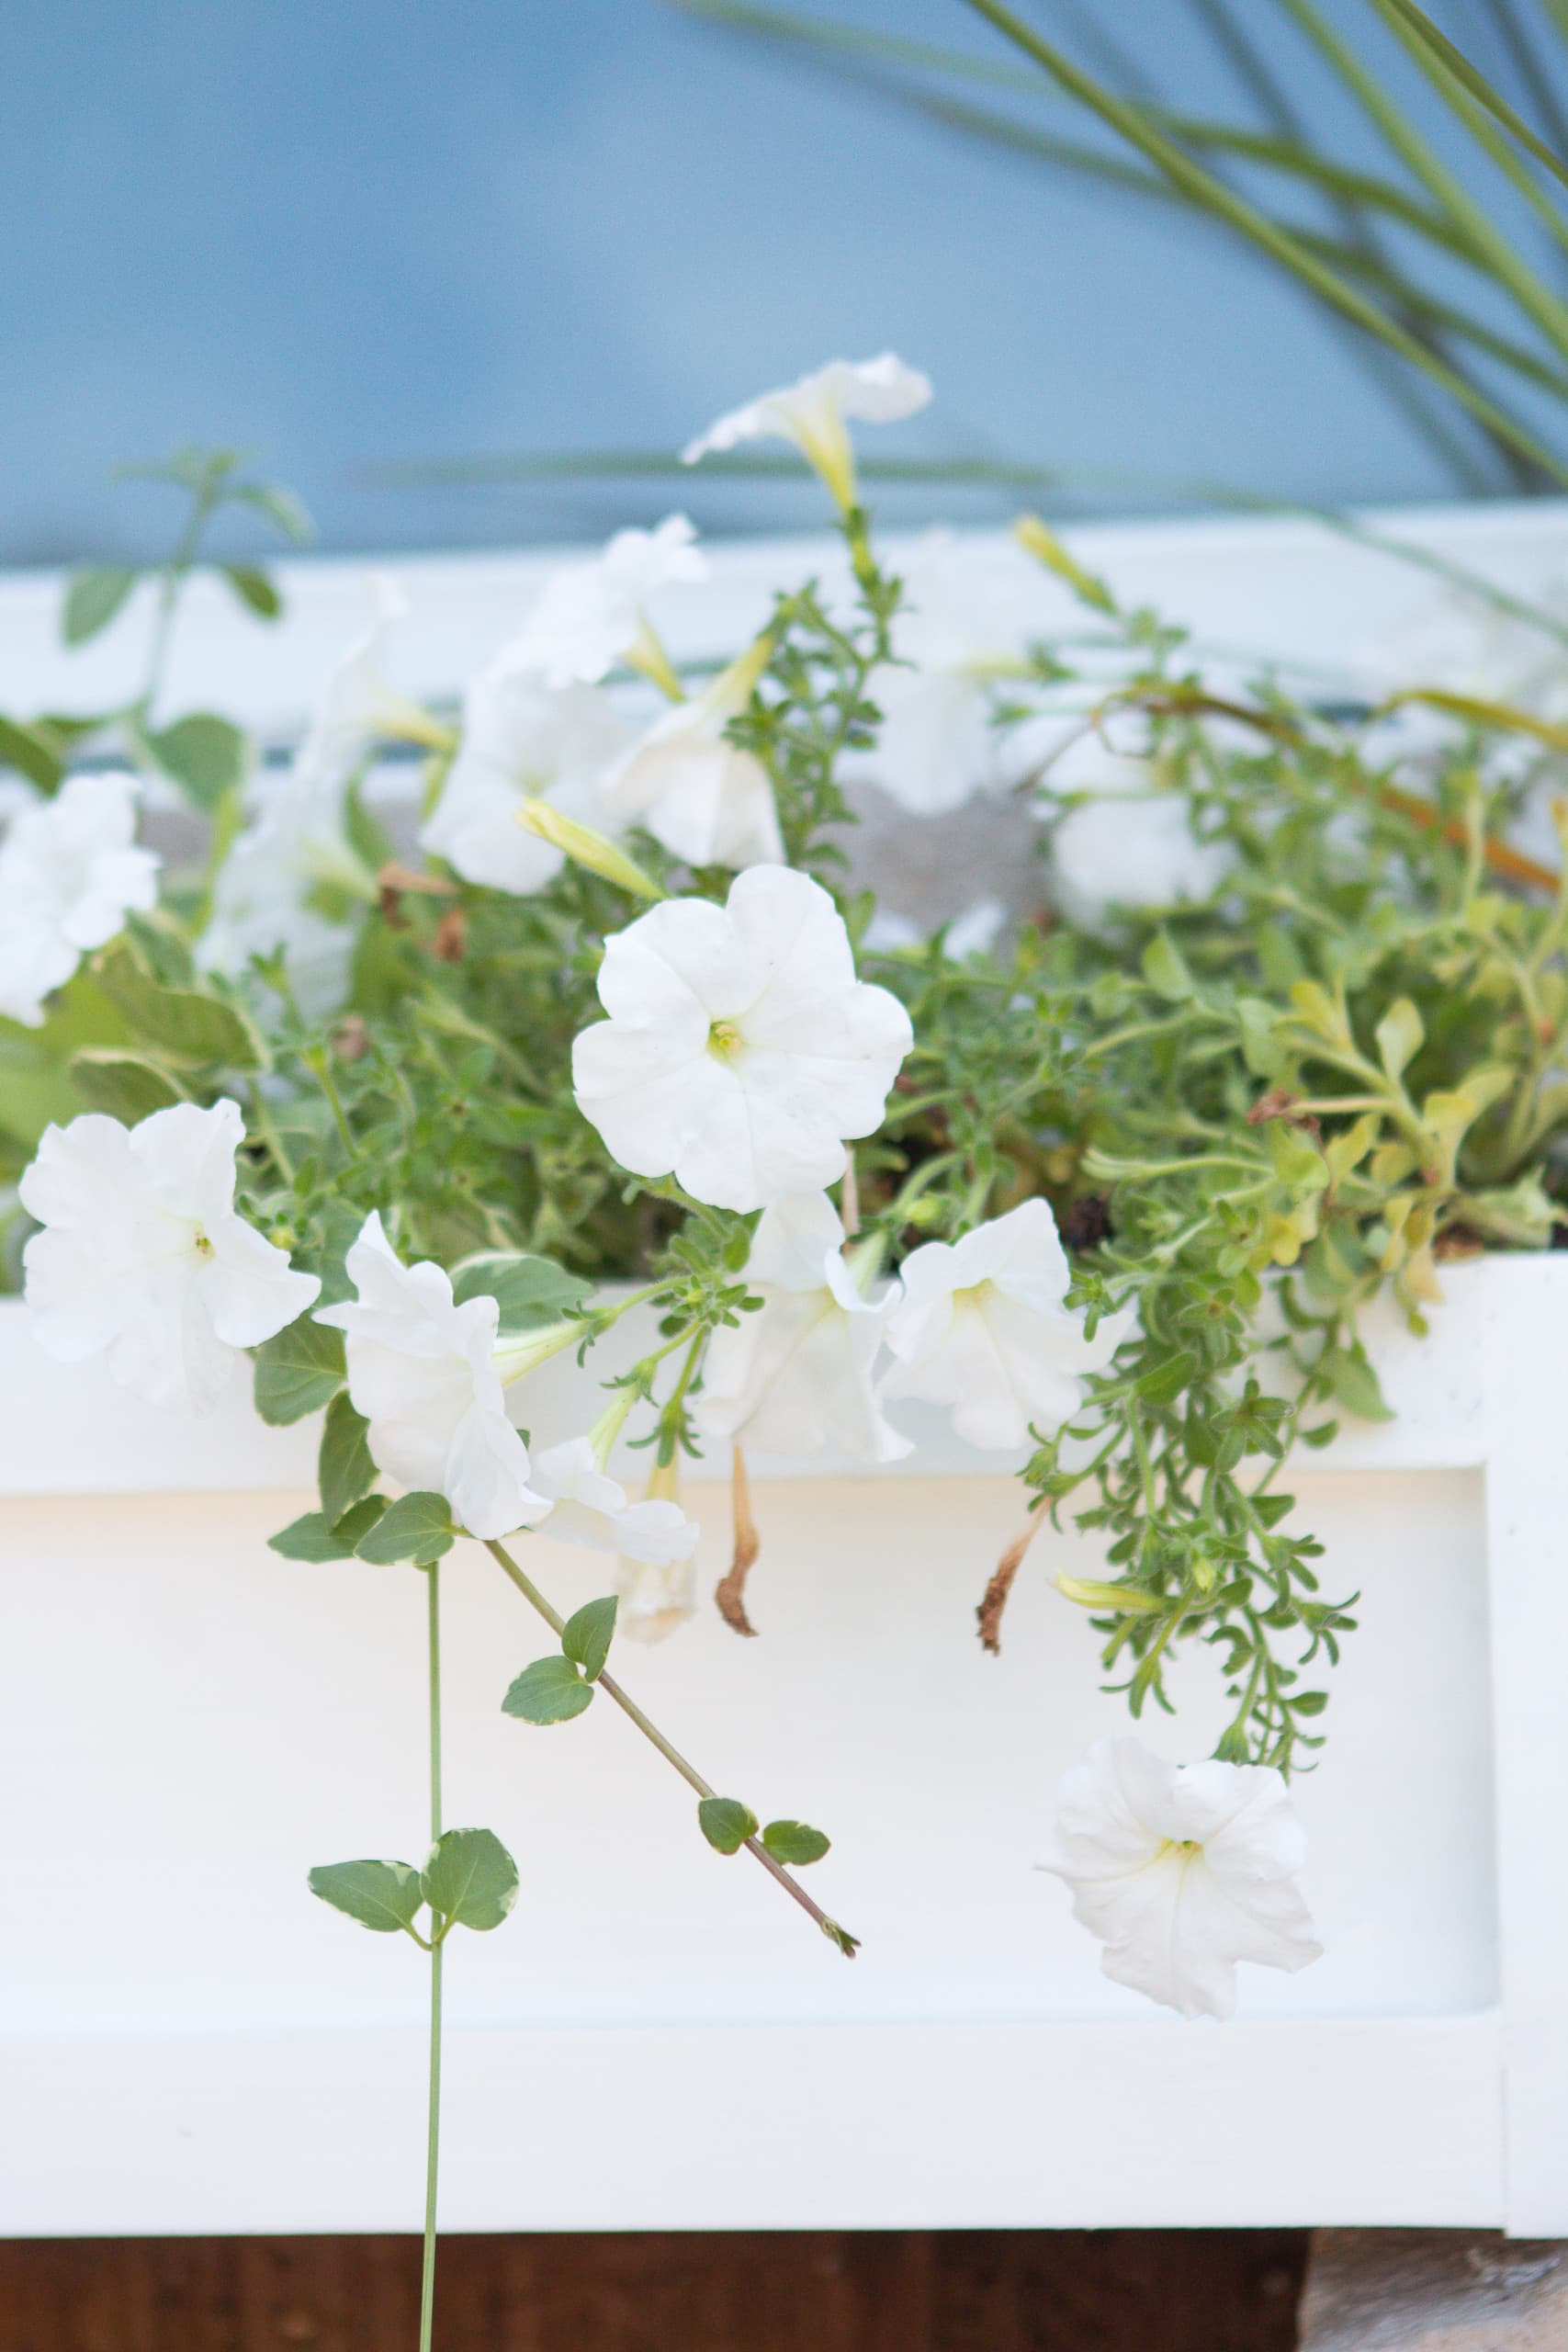 White wave petunias in a window box